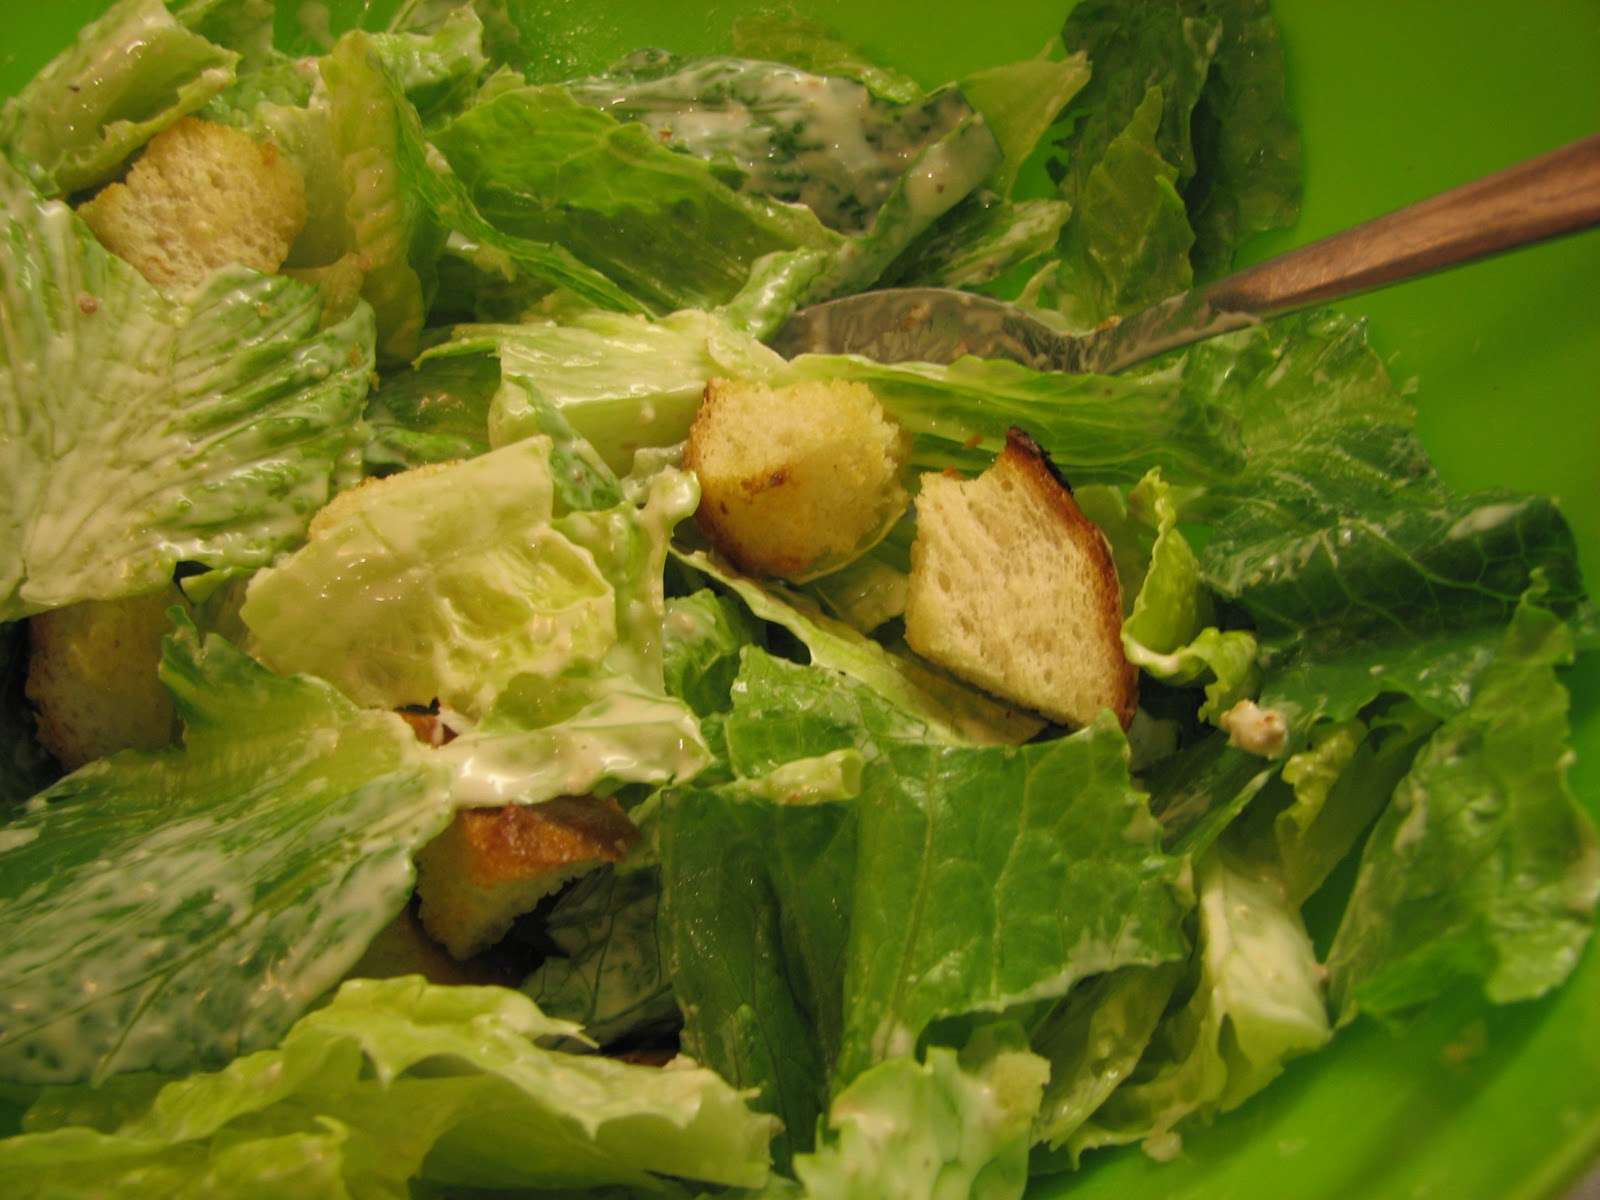 Plate it up right away. Caesar shouldn't sit. Top with fresh grated